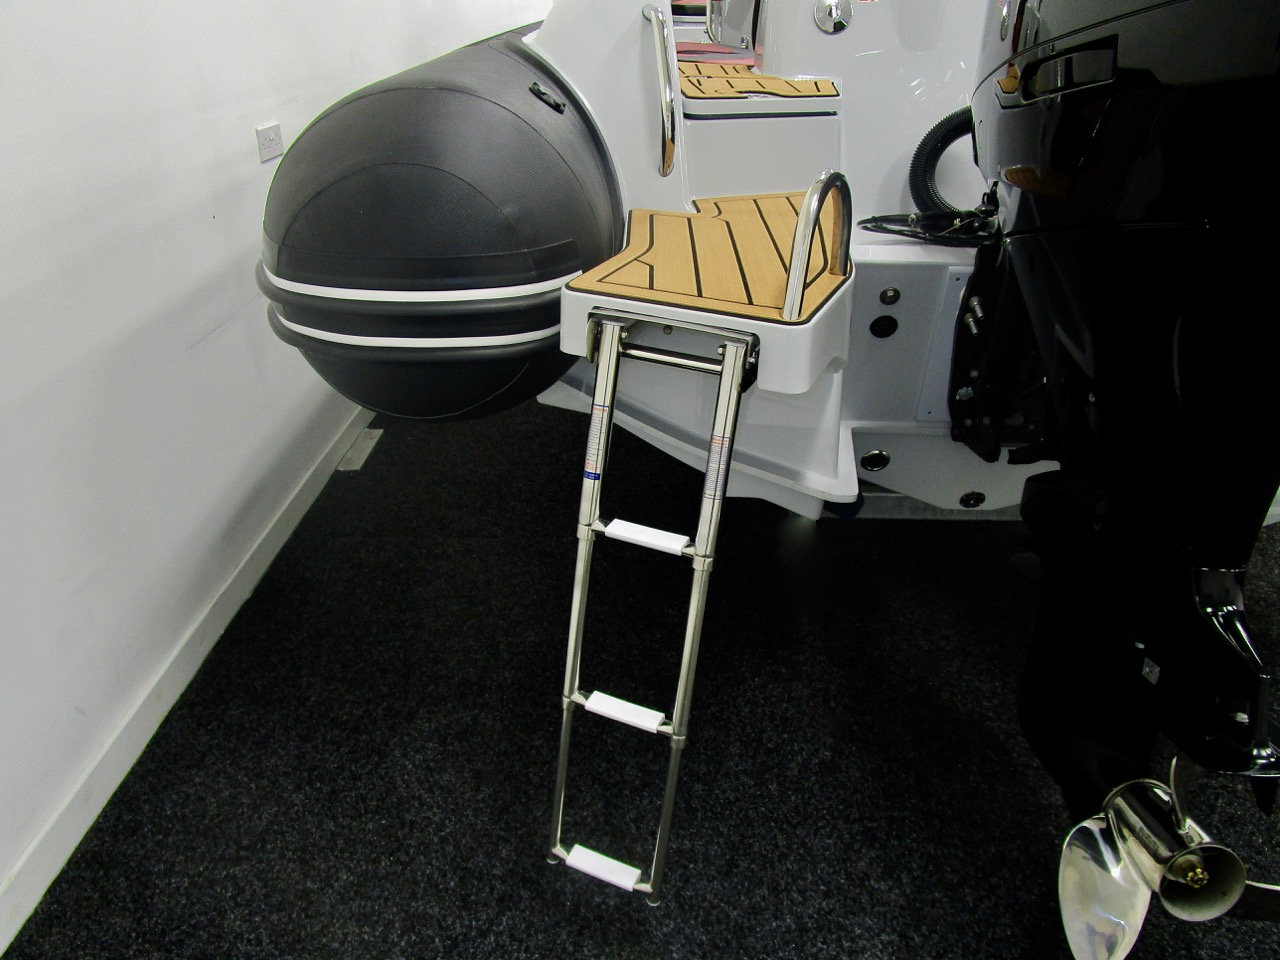 GRAND G750 RIB bathing ladder down